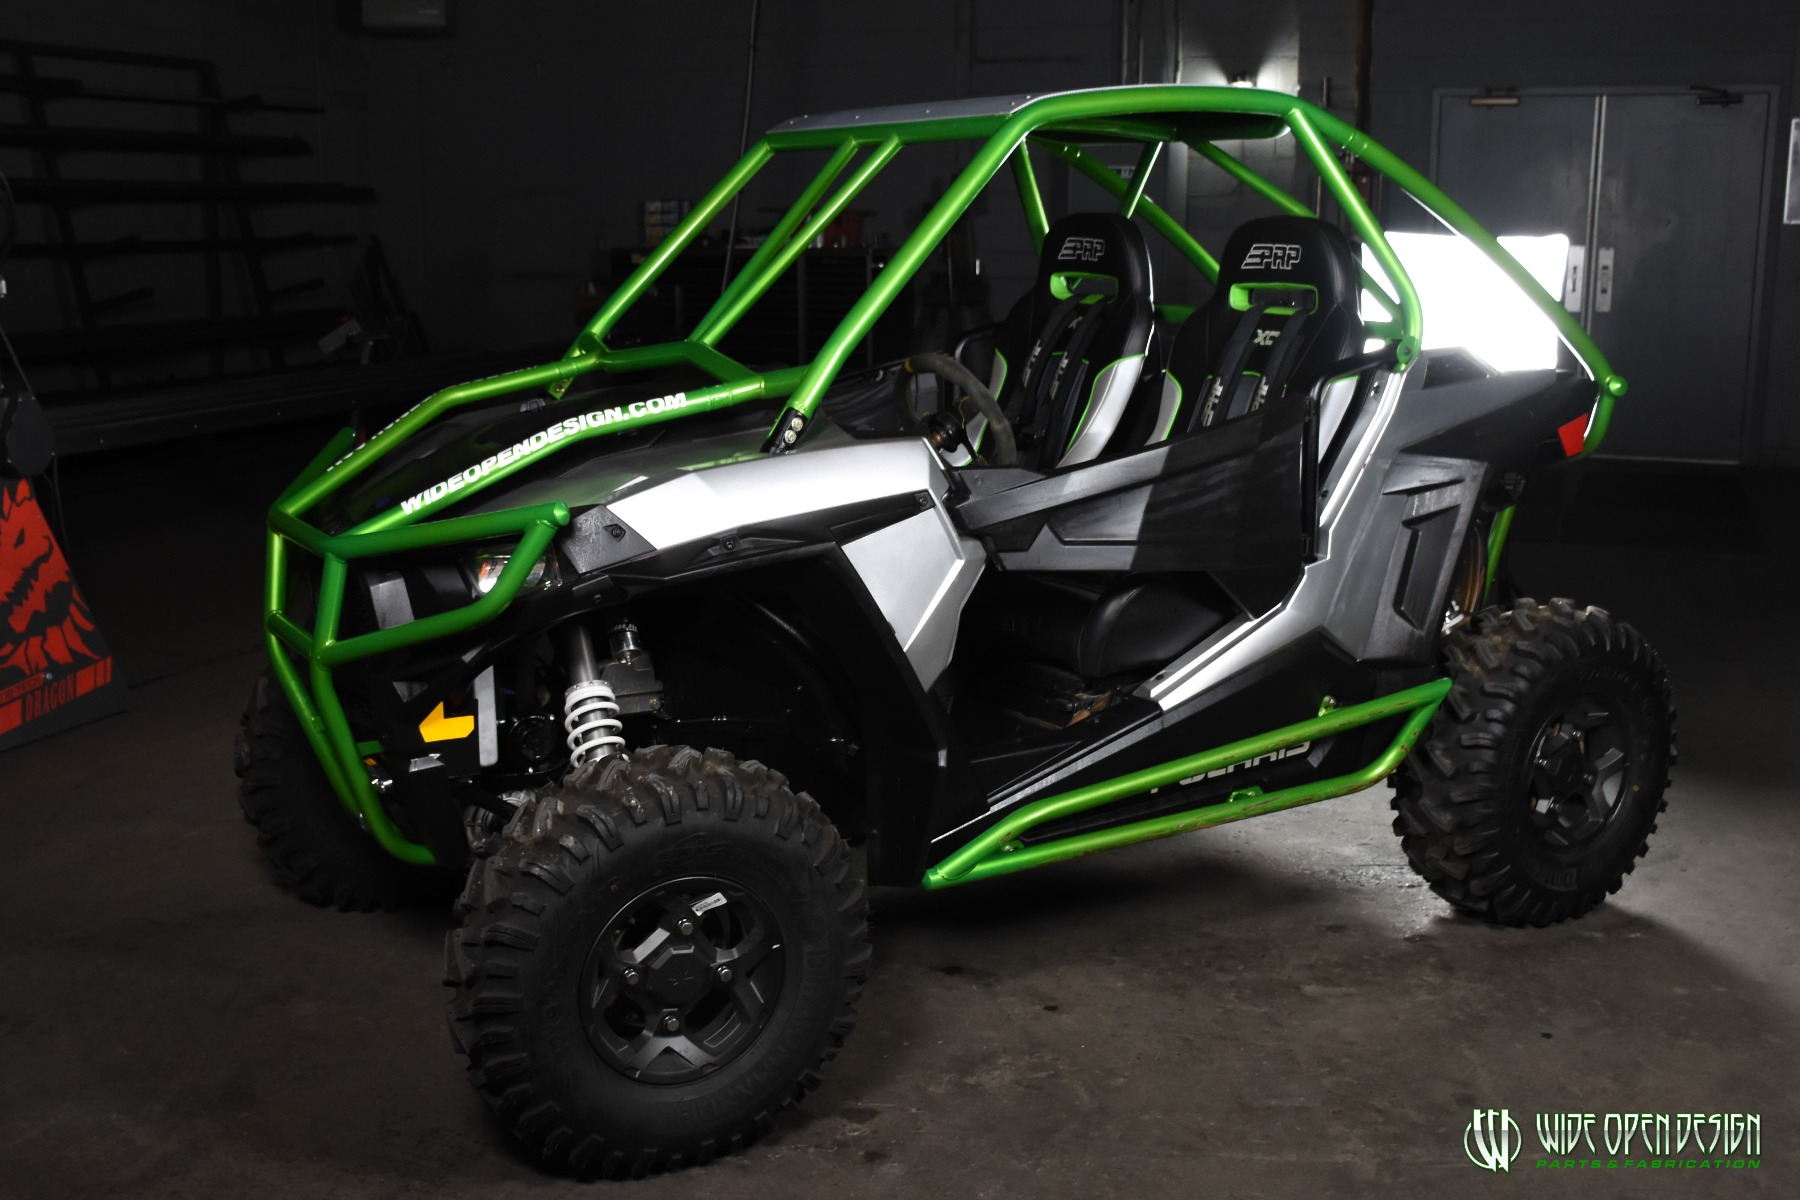 Jason's 1000s RZR with Wide Open Design Rolled Roof Cage, Front Bumper with Tie In, and Rocker Guards 4